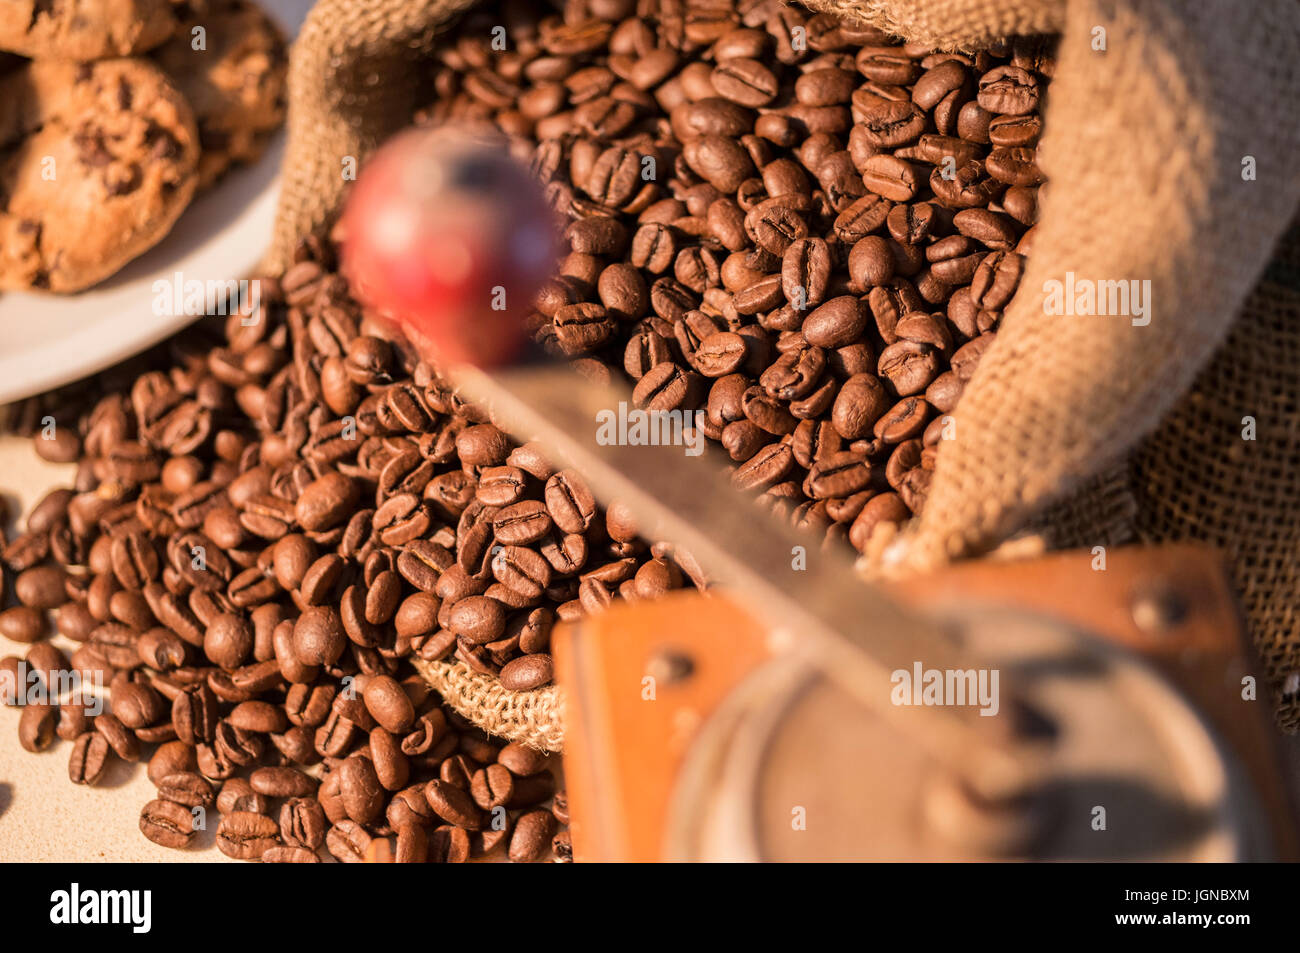 Close up of a manual coffee grinder with coffee beans in sack - Stock Image